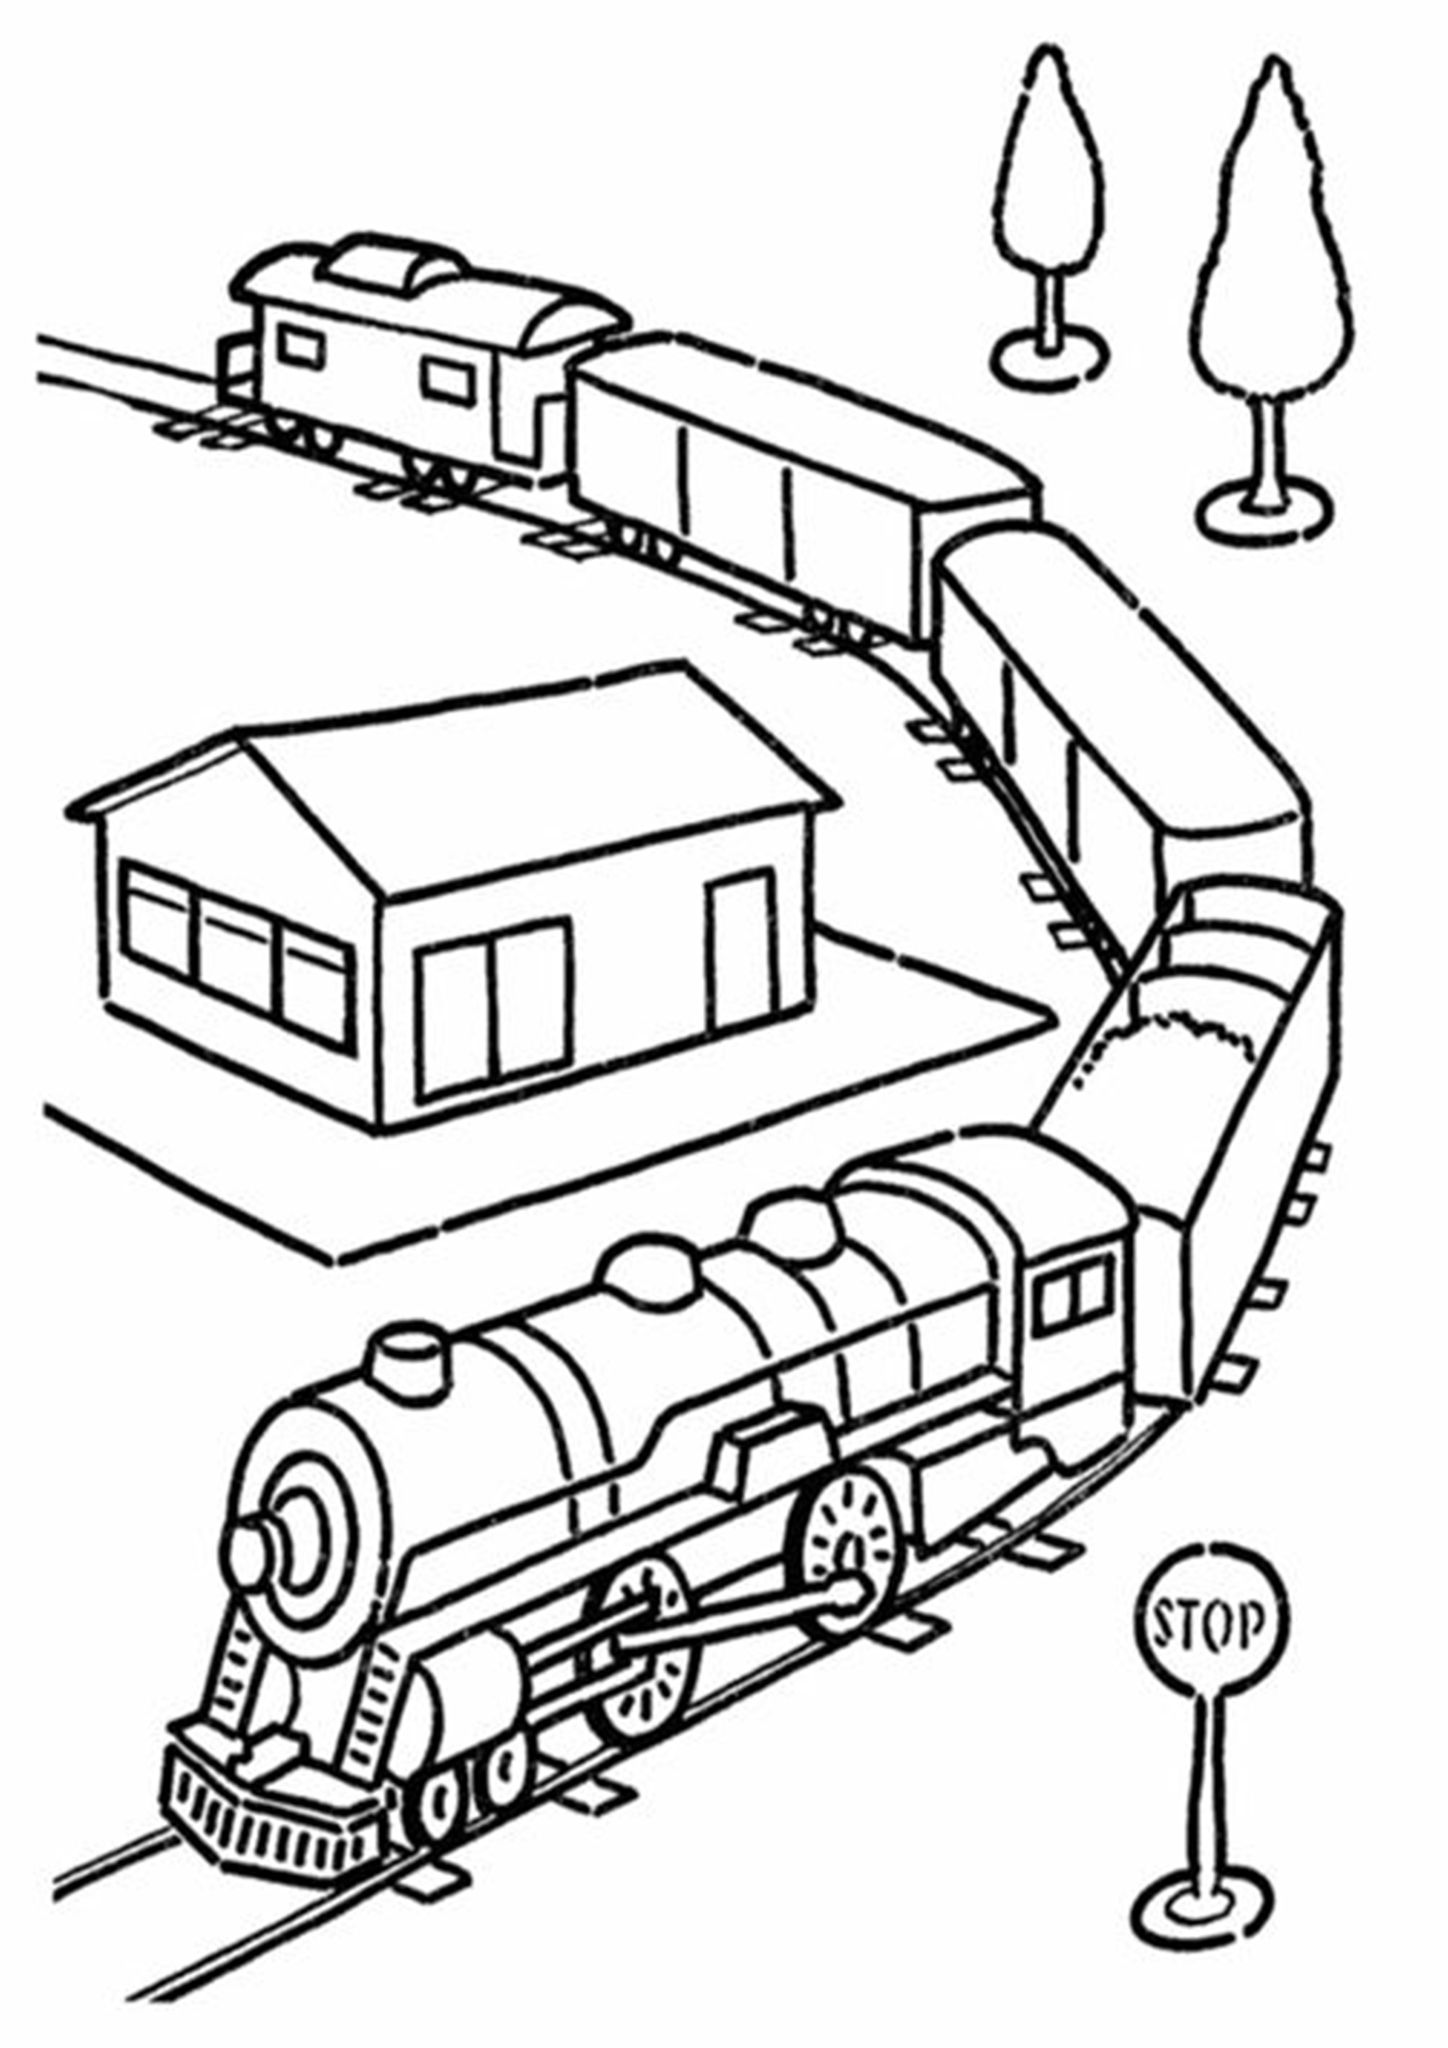 Free Easy To Print Train Coloring Pages Train Coloring Pages Coloring Pages For Kids Free Coloring Pages